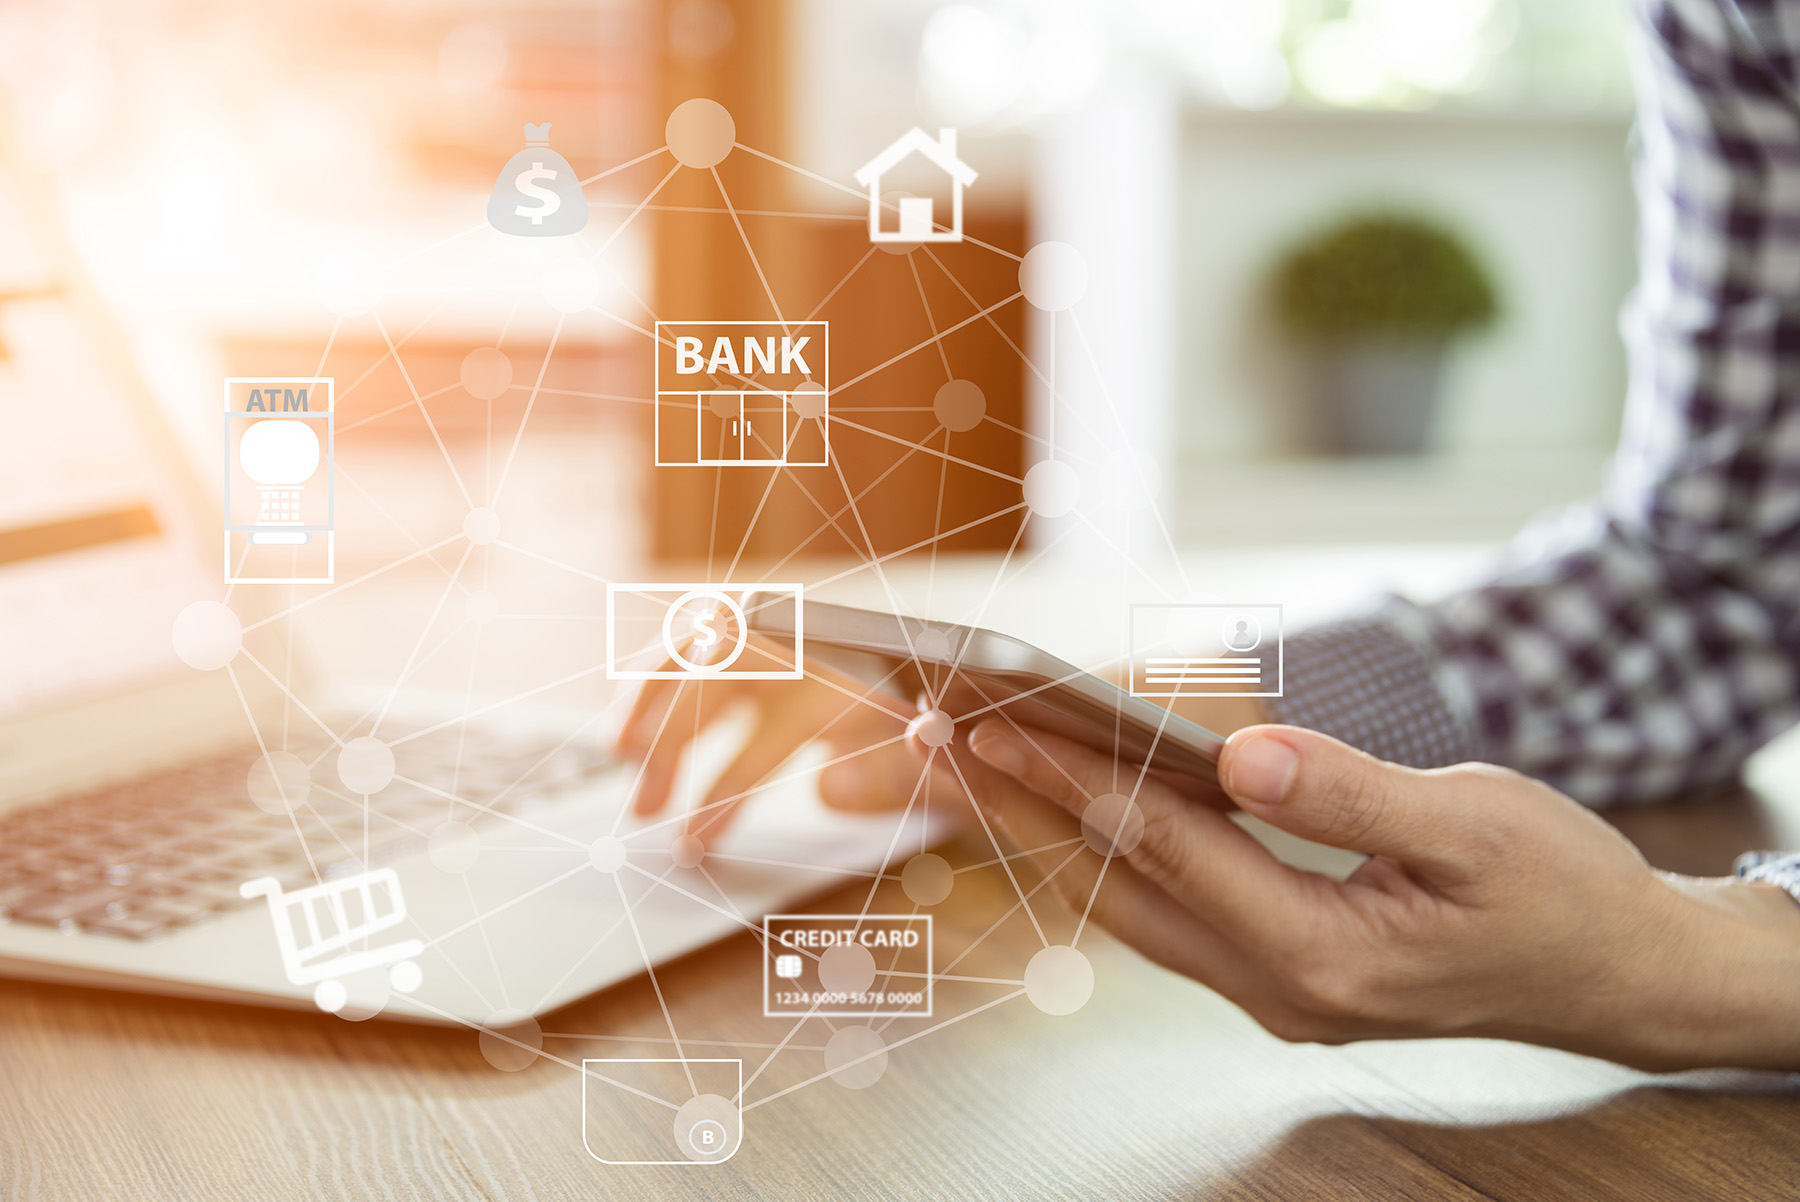 Big picture of finance, connecting the dots